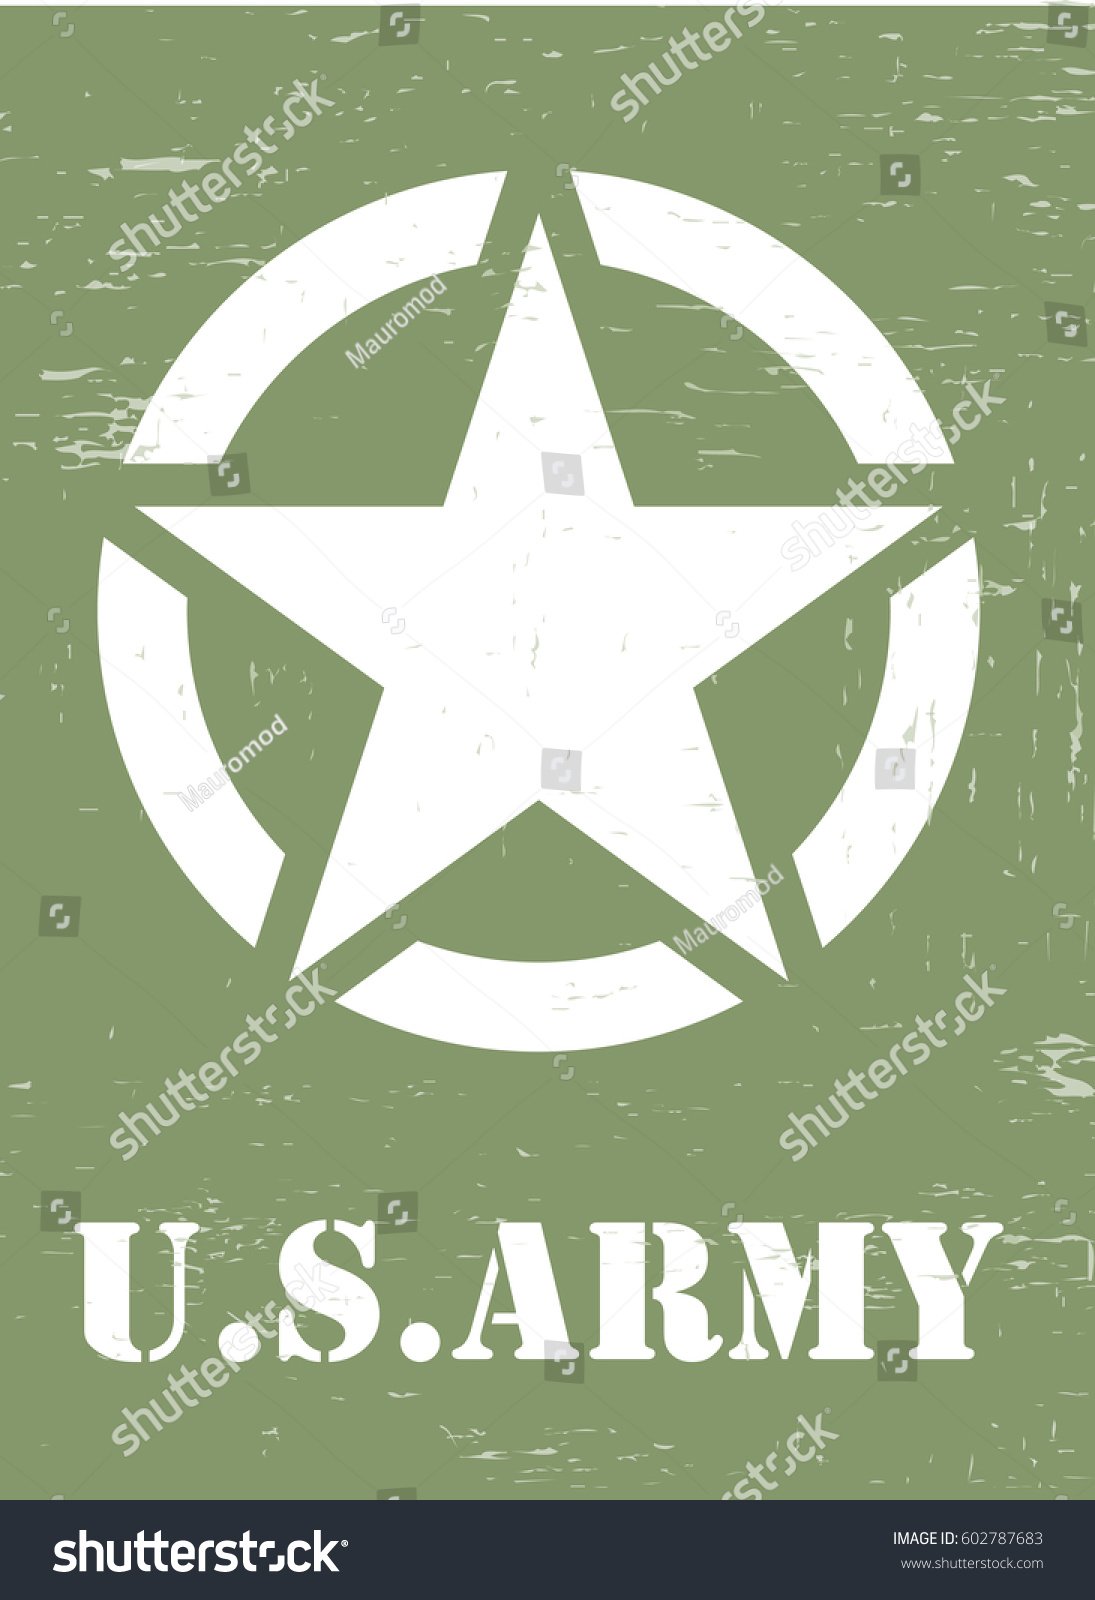 Us Army Symbol Stock Vector Royalty Free 602787683 Shutterstock